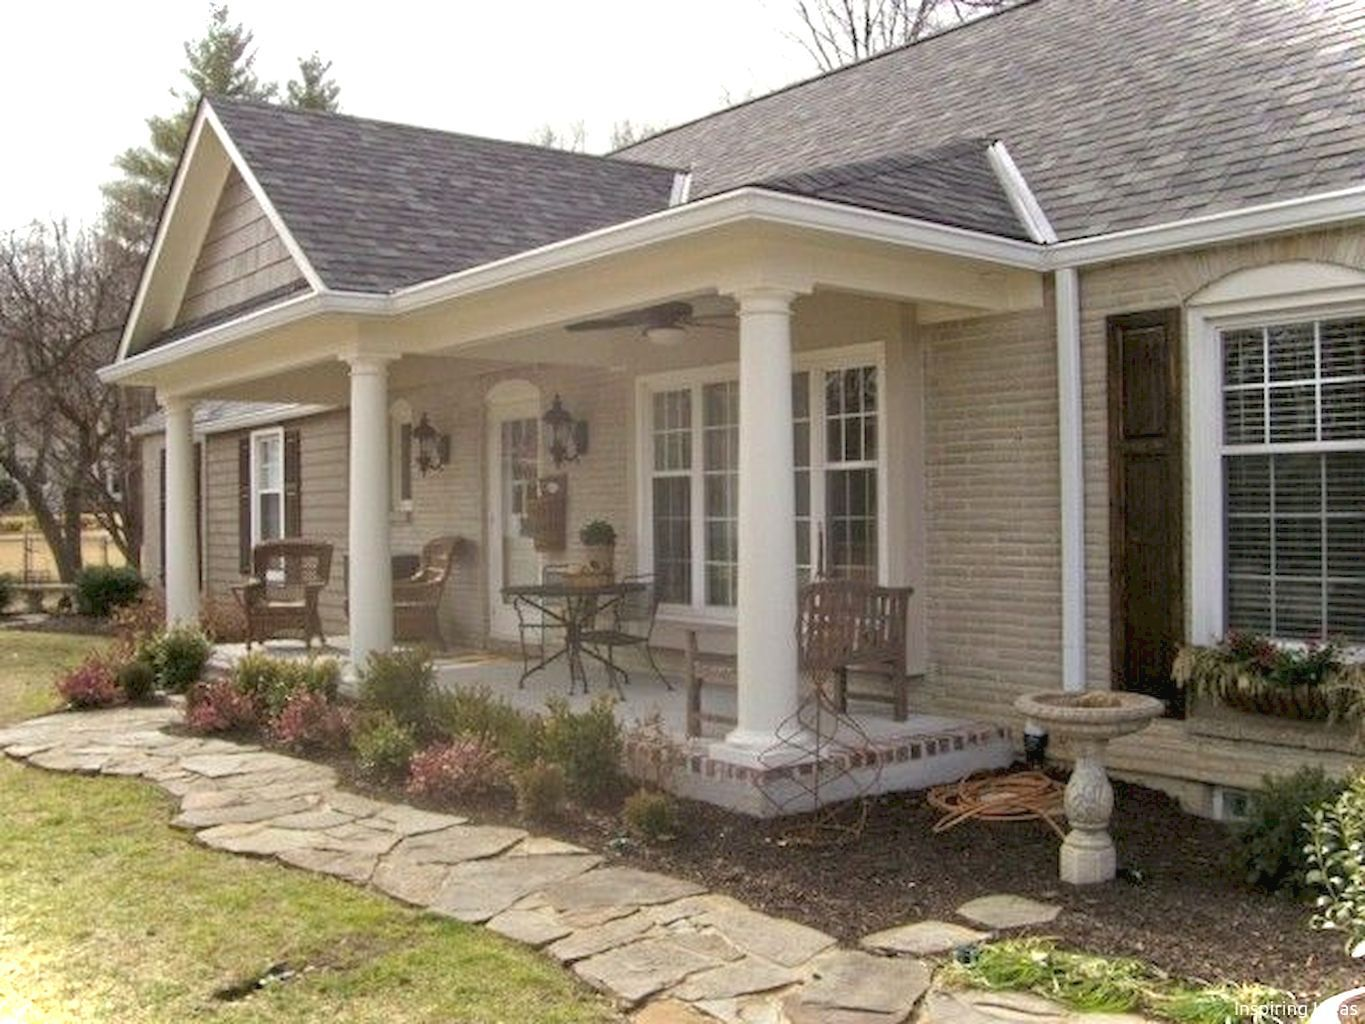 The Complete Book Of Running House Front Porch Facade House Ranch Style Homes